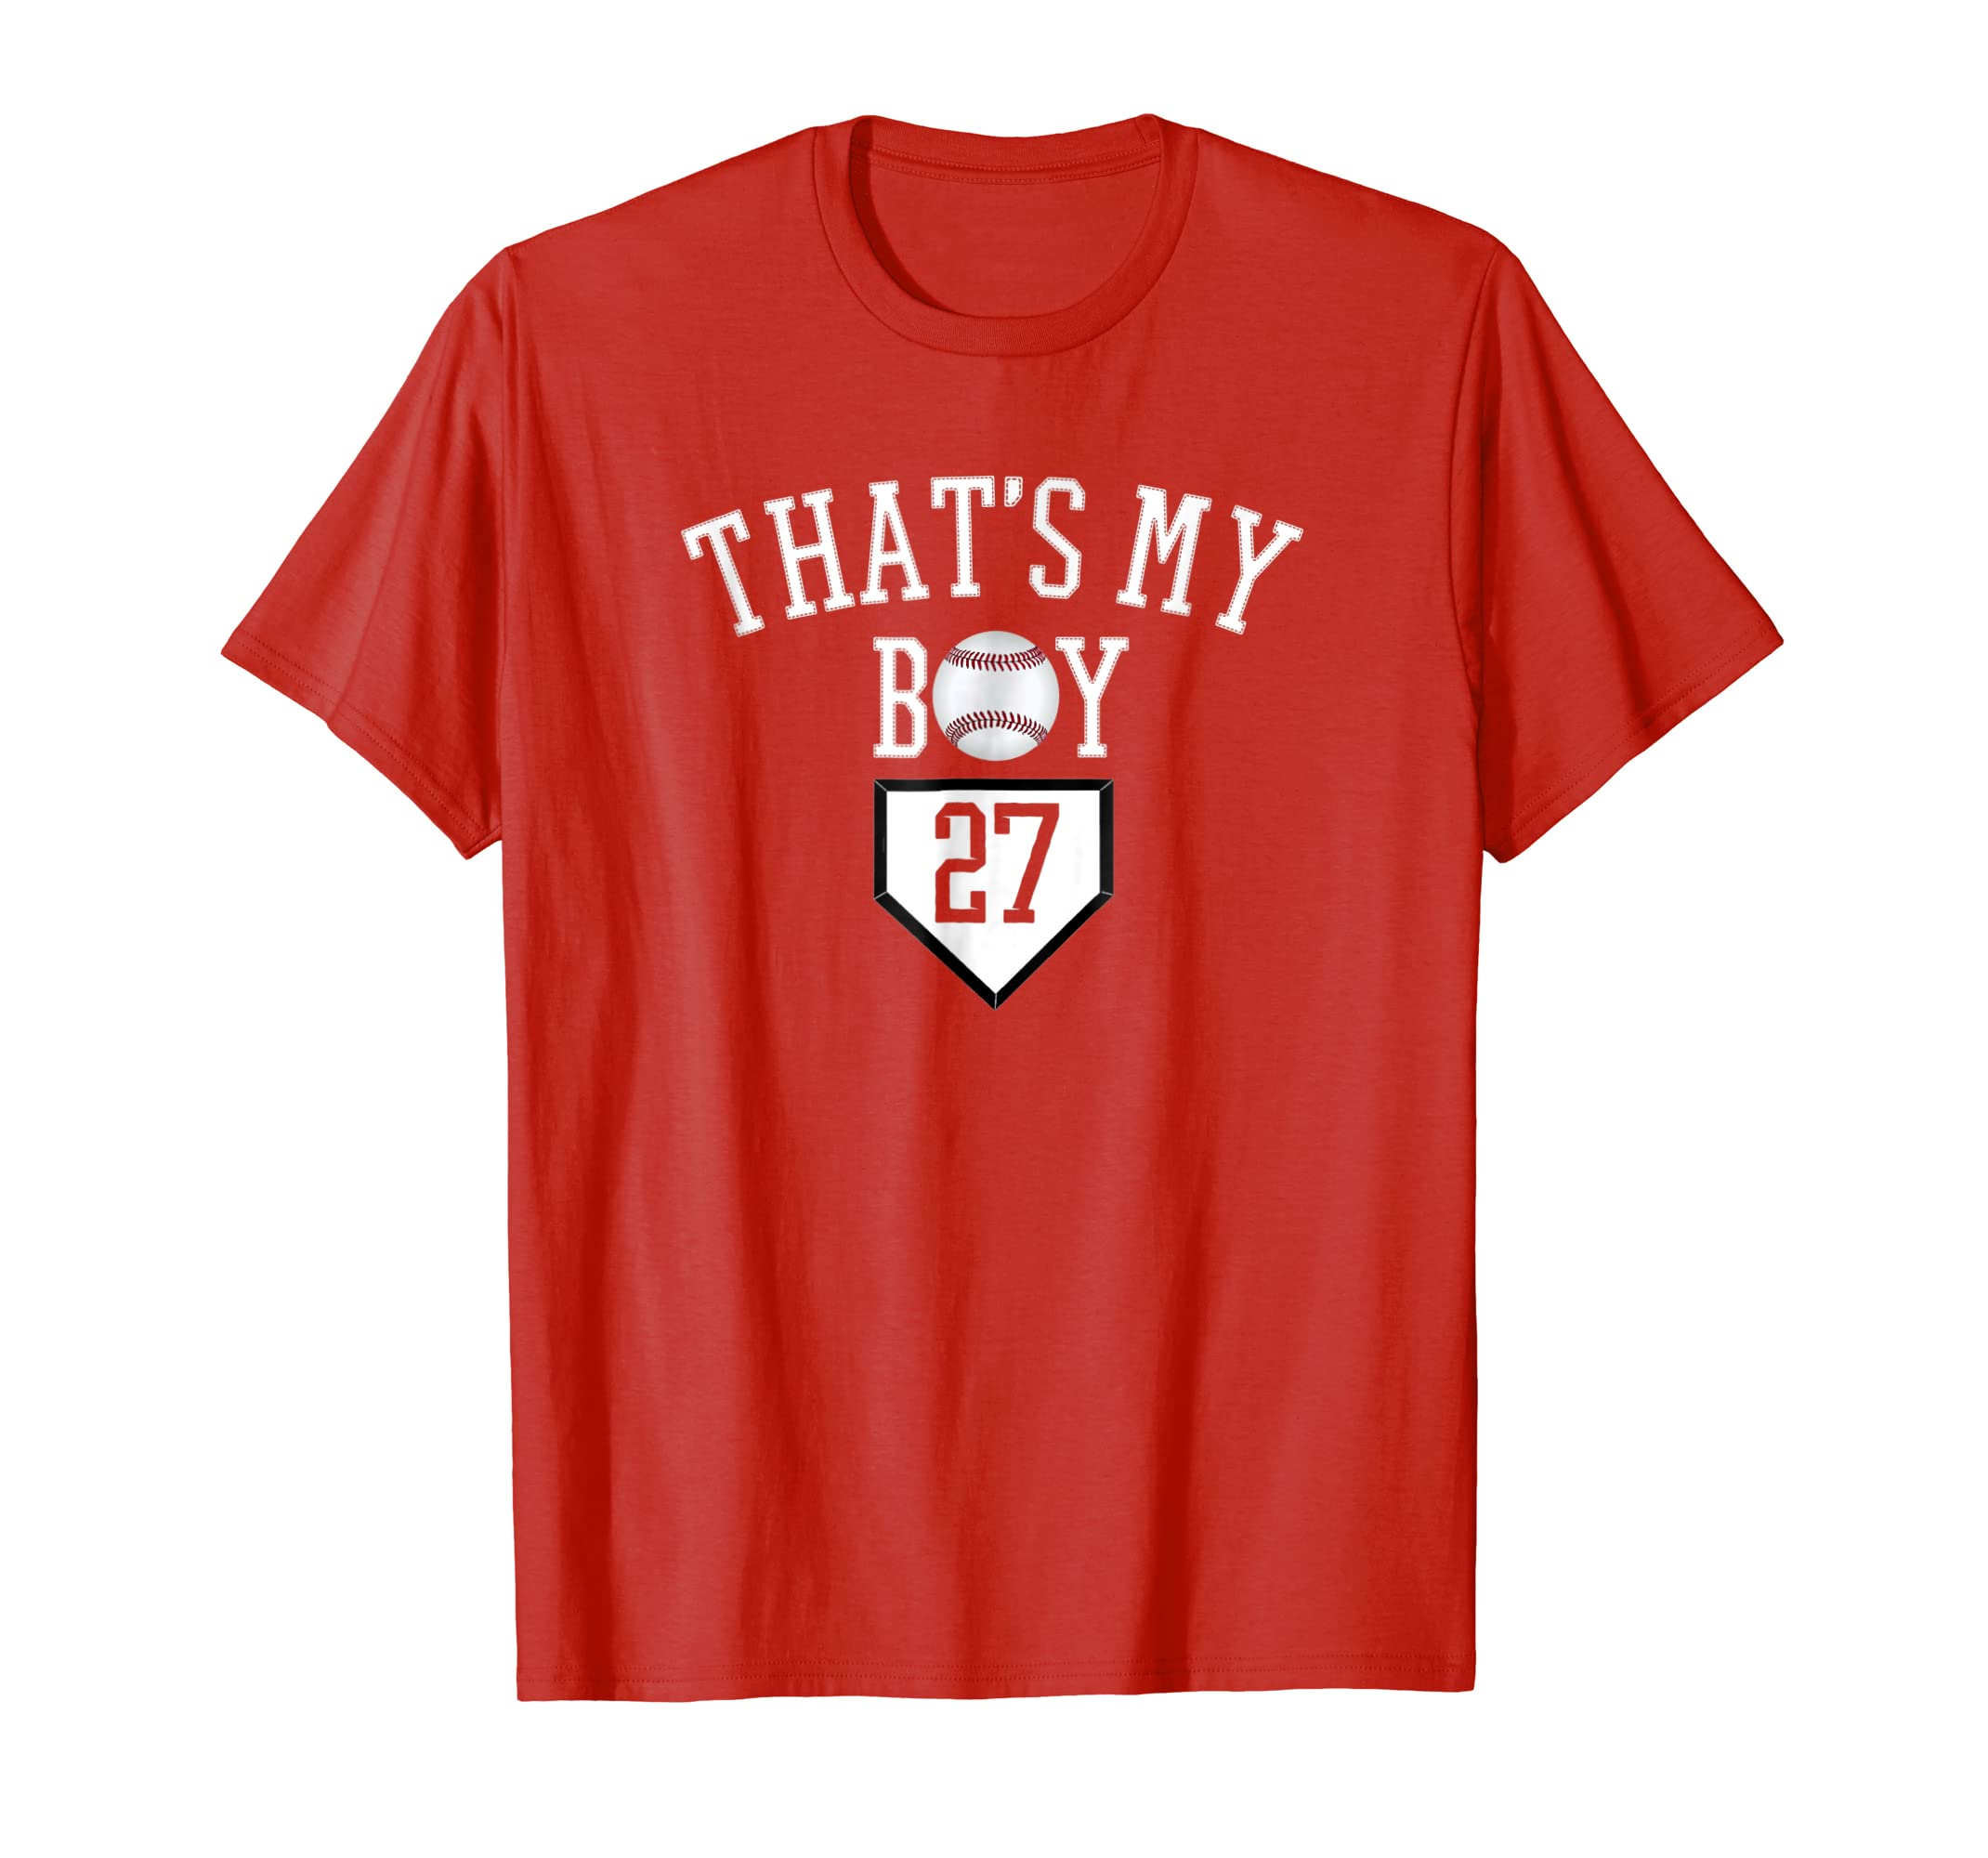 #27 Thats My Boy Baseball Number Shirt-Baseball Mom Dad Tee-alottee gift